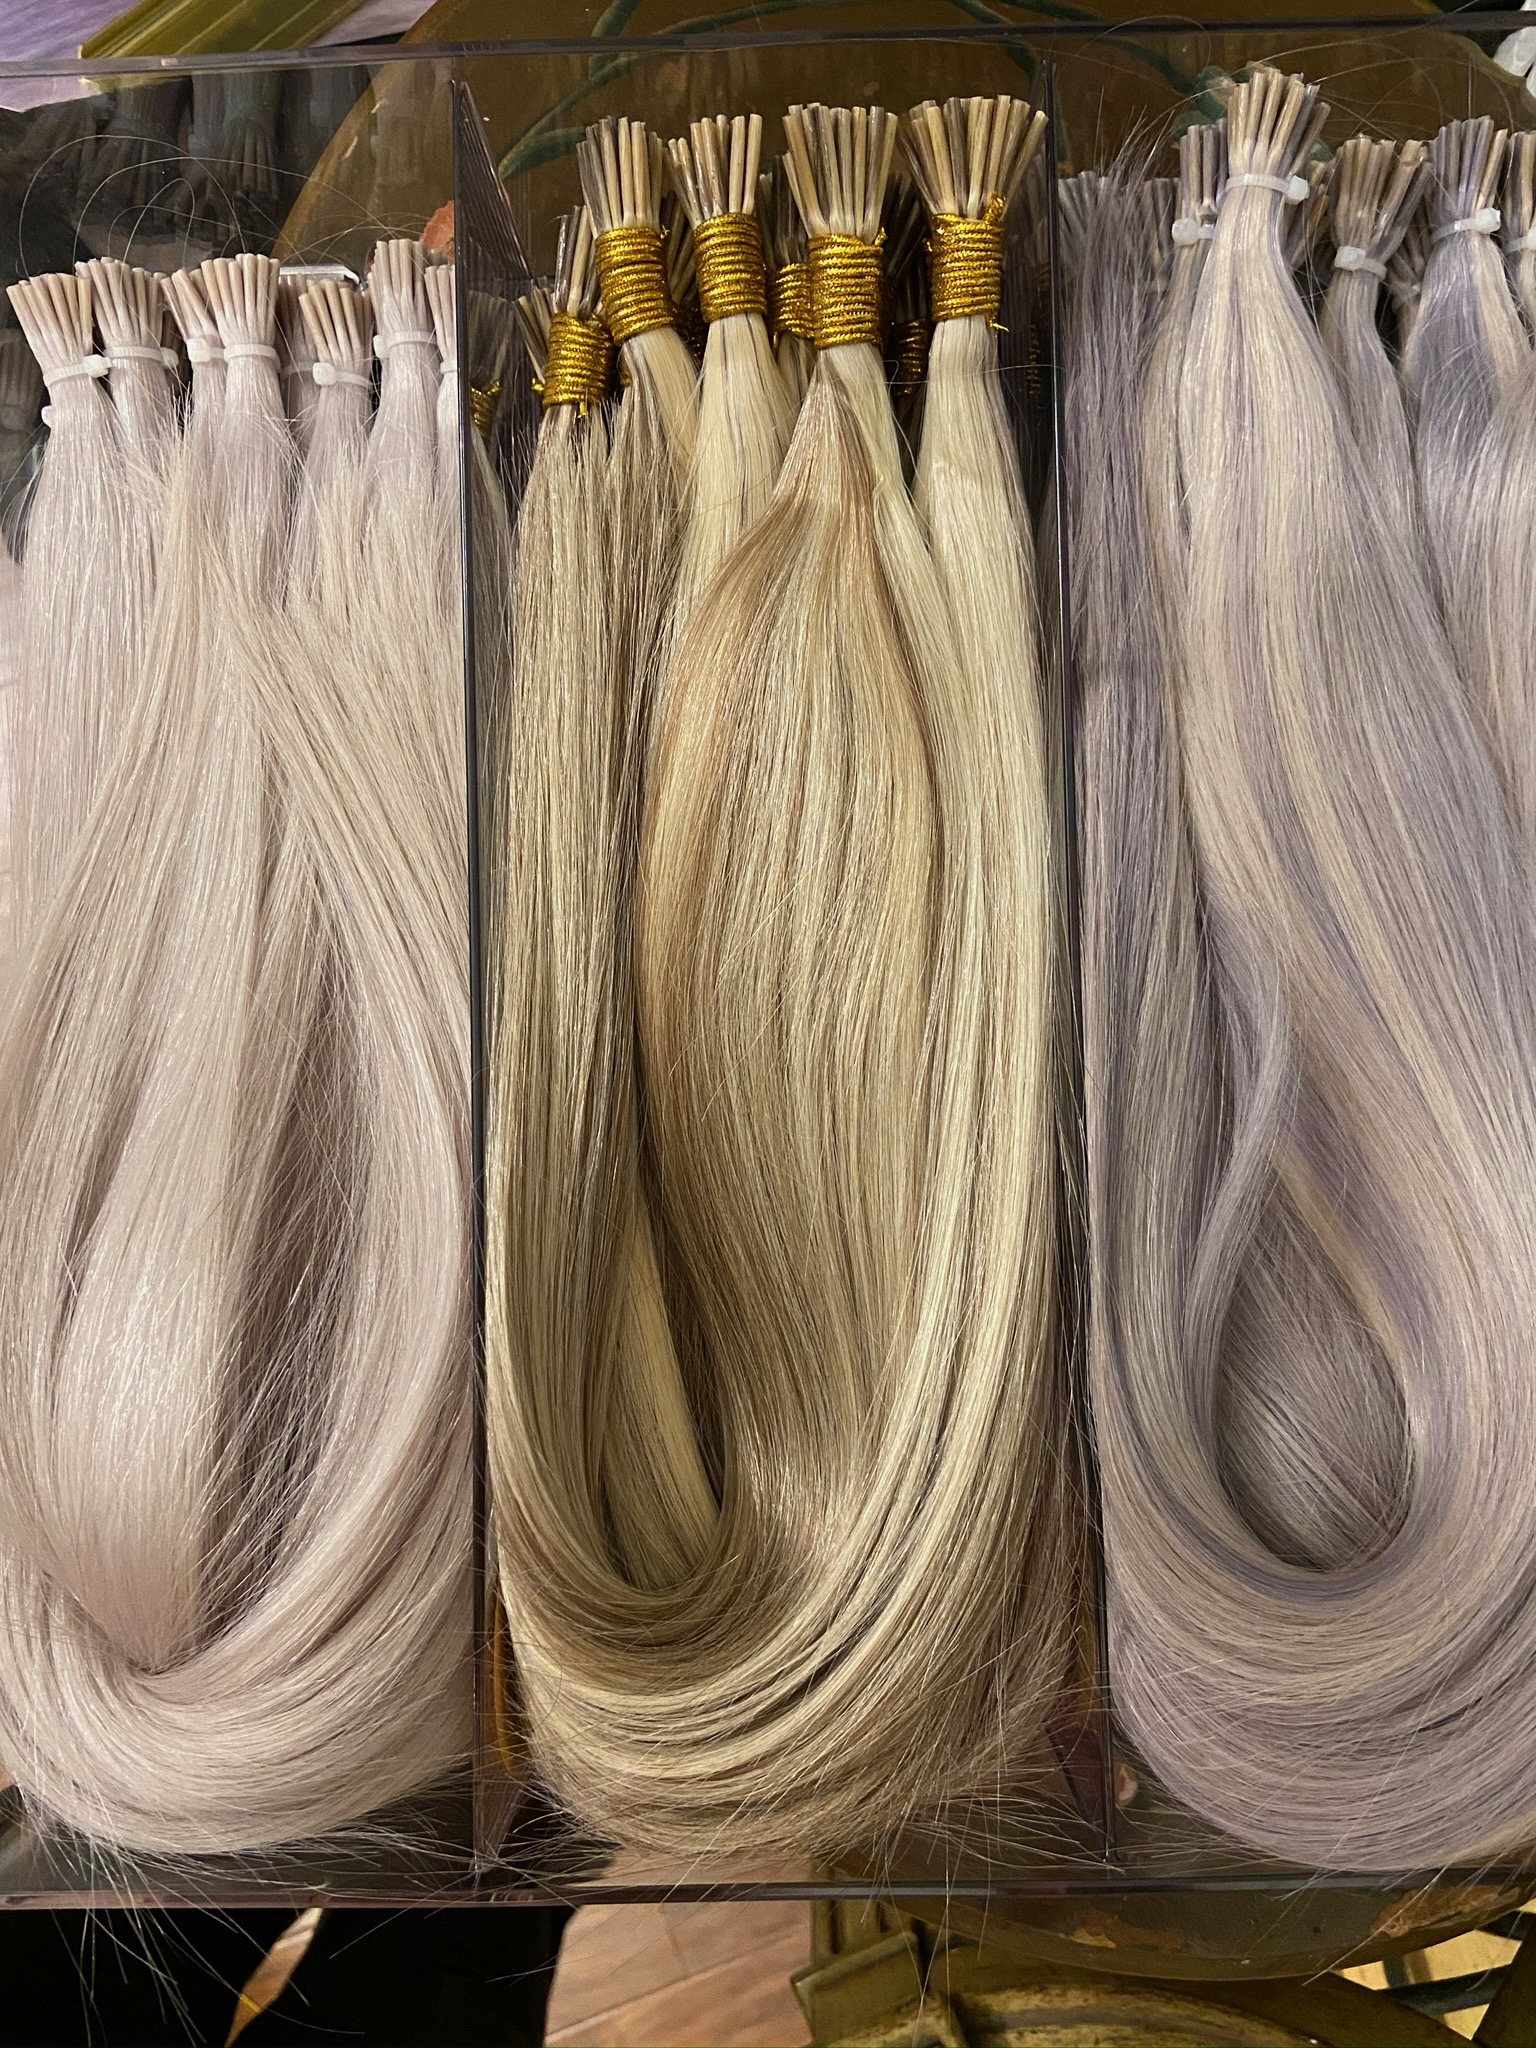 Hair Extension inventory